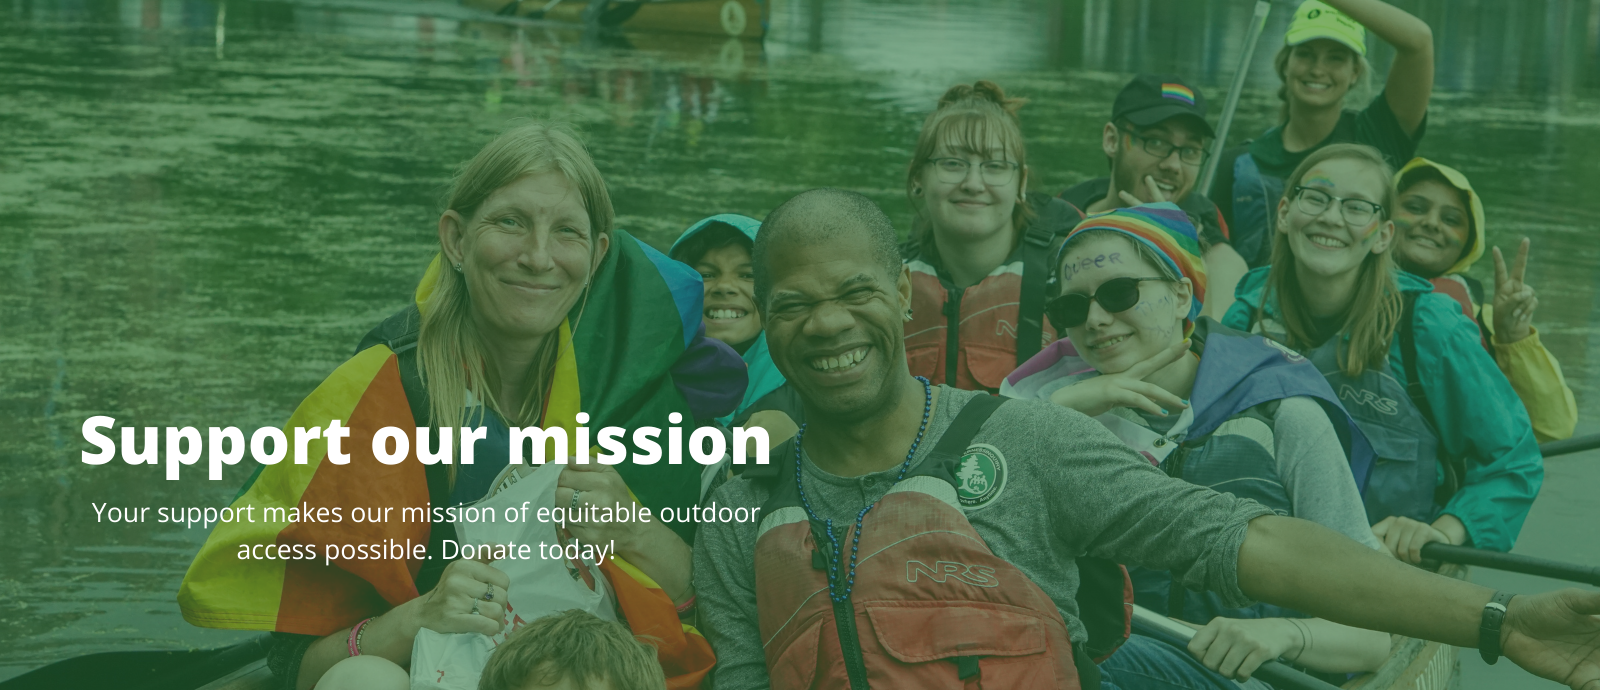 Support our mission - your support makes our mission of equitable outdoor access possible. Donate today!